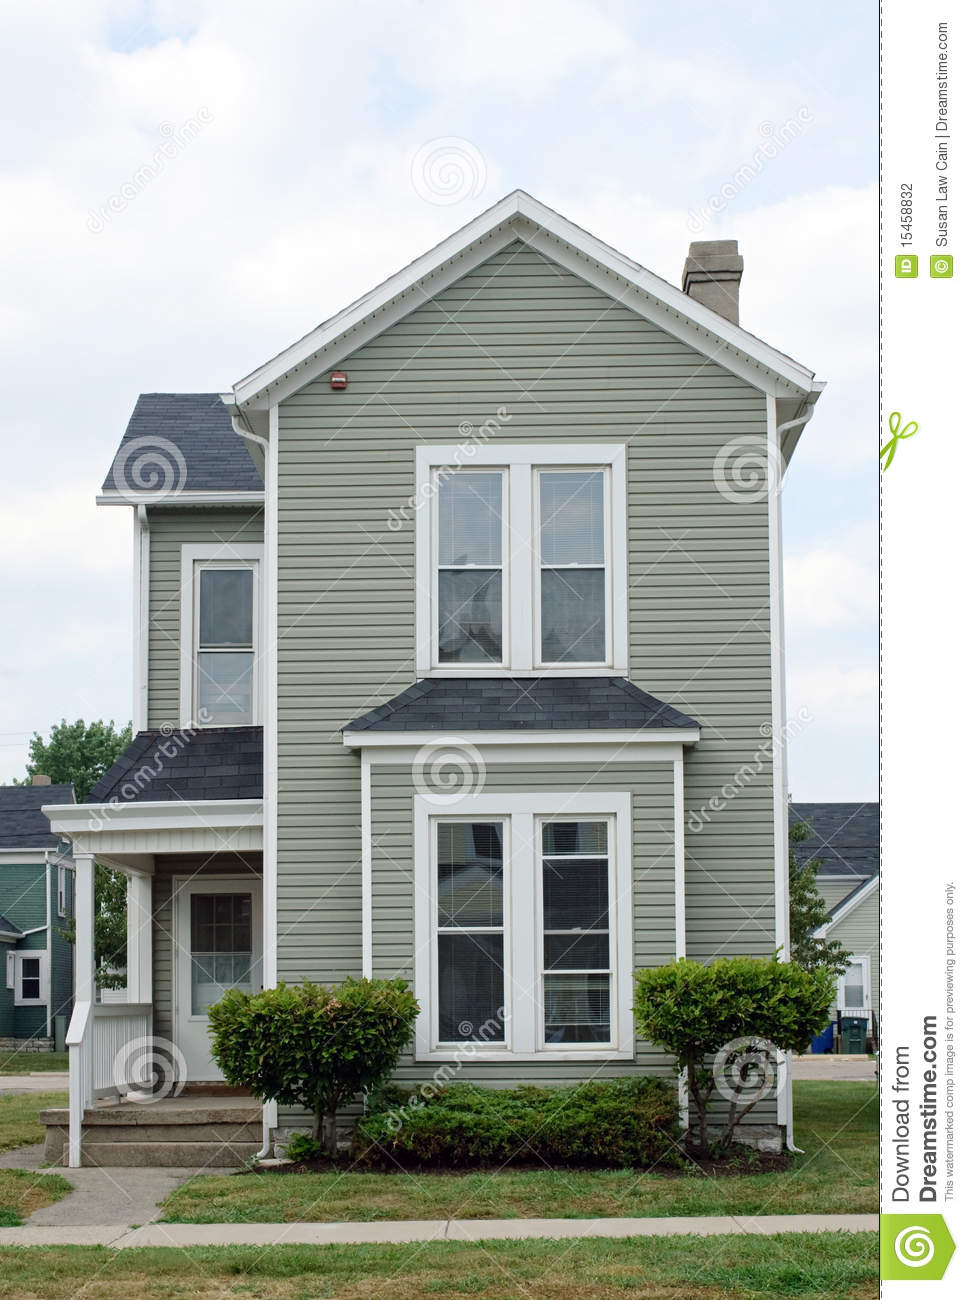 Little Gray House Stock Photo Image Of Summer Outdoors